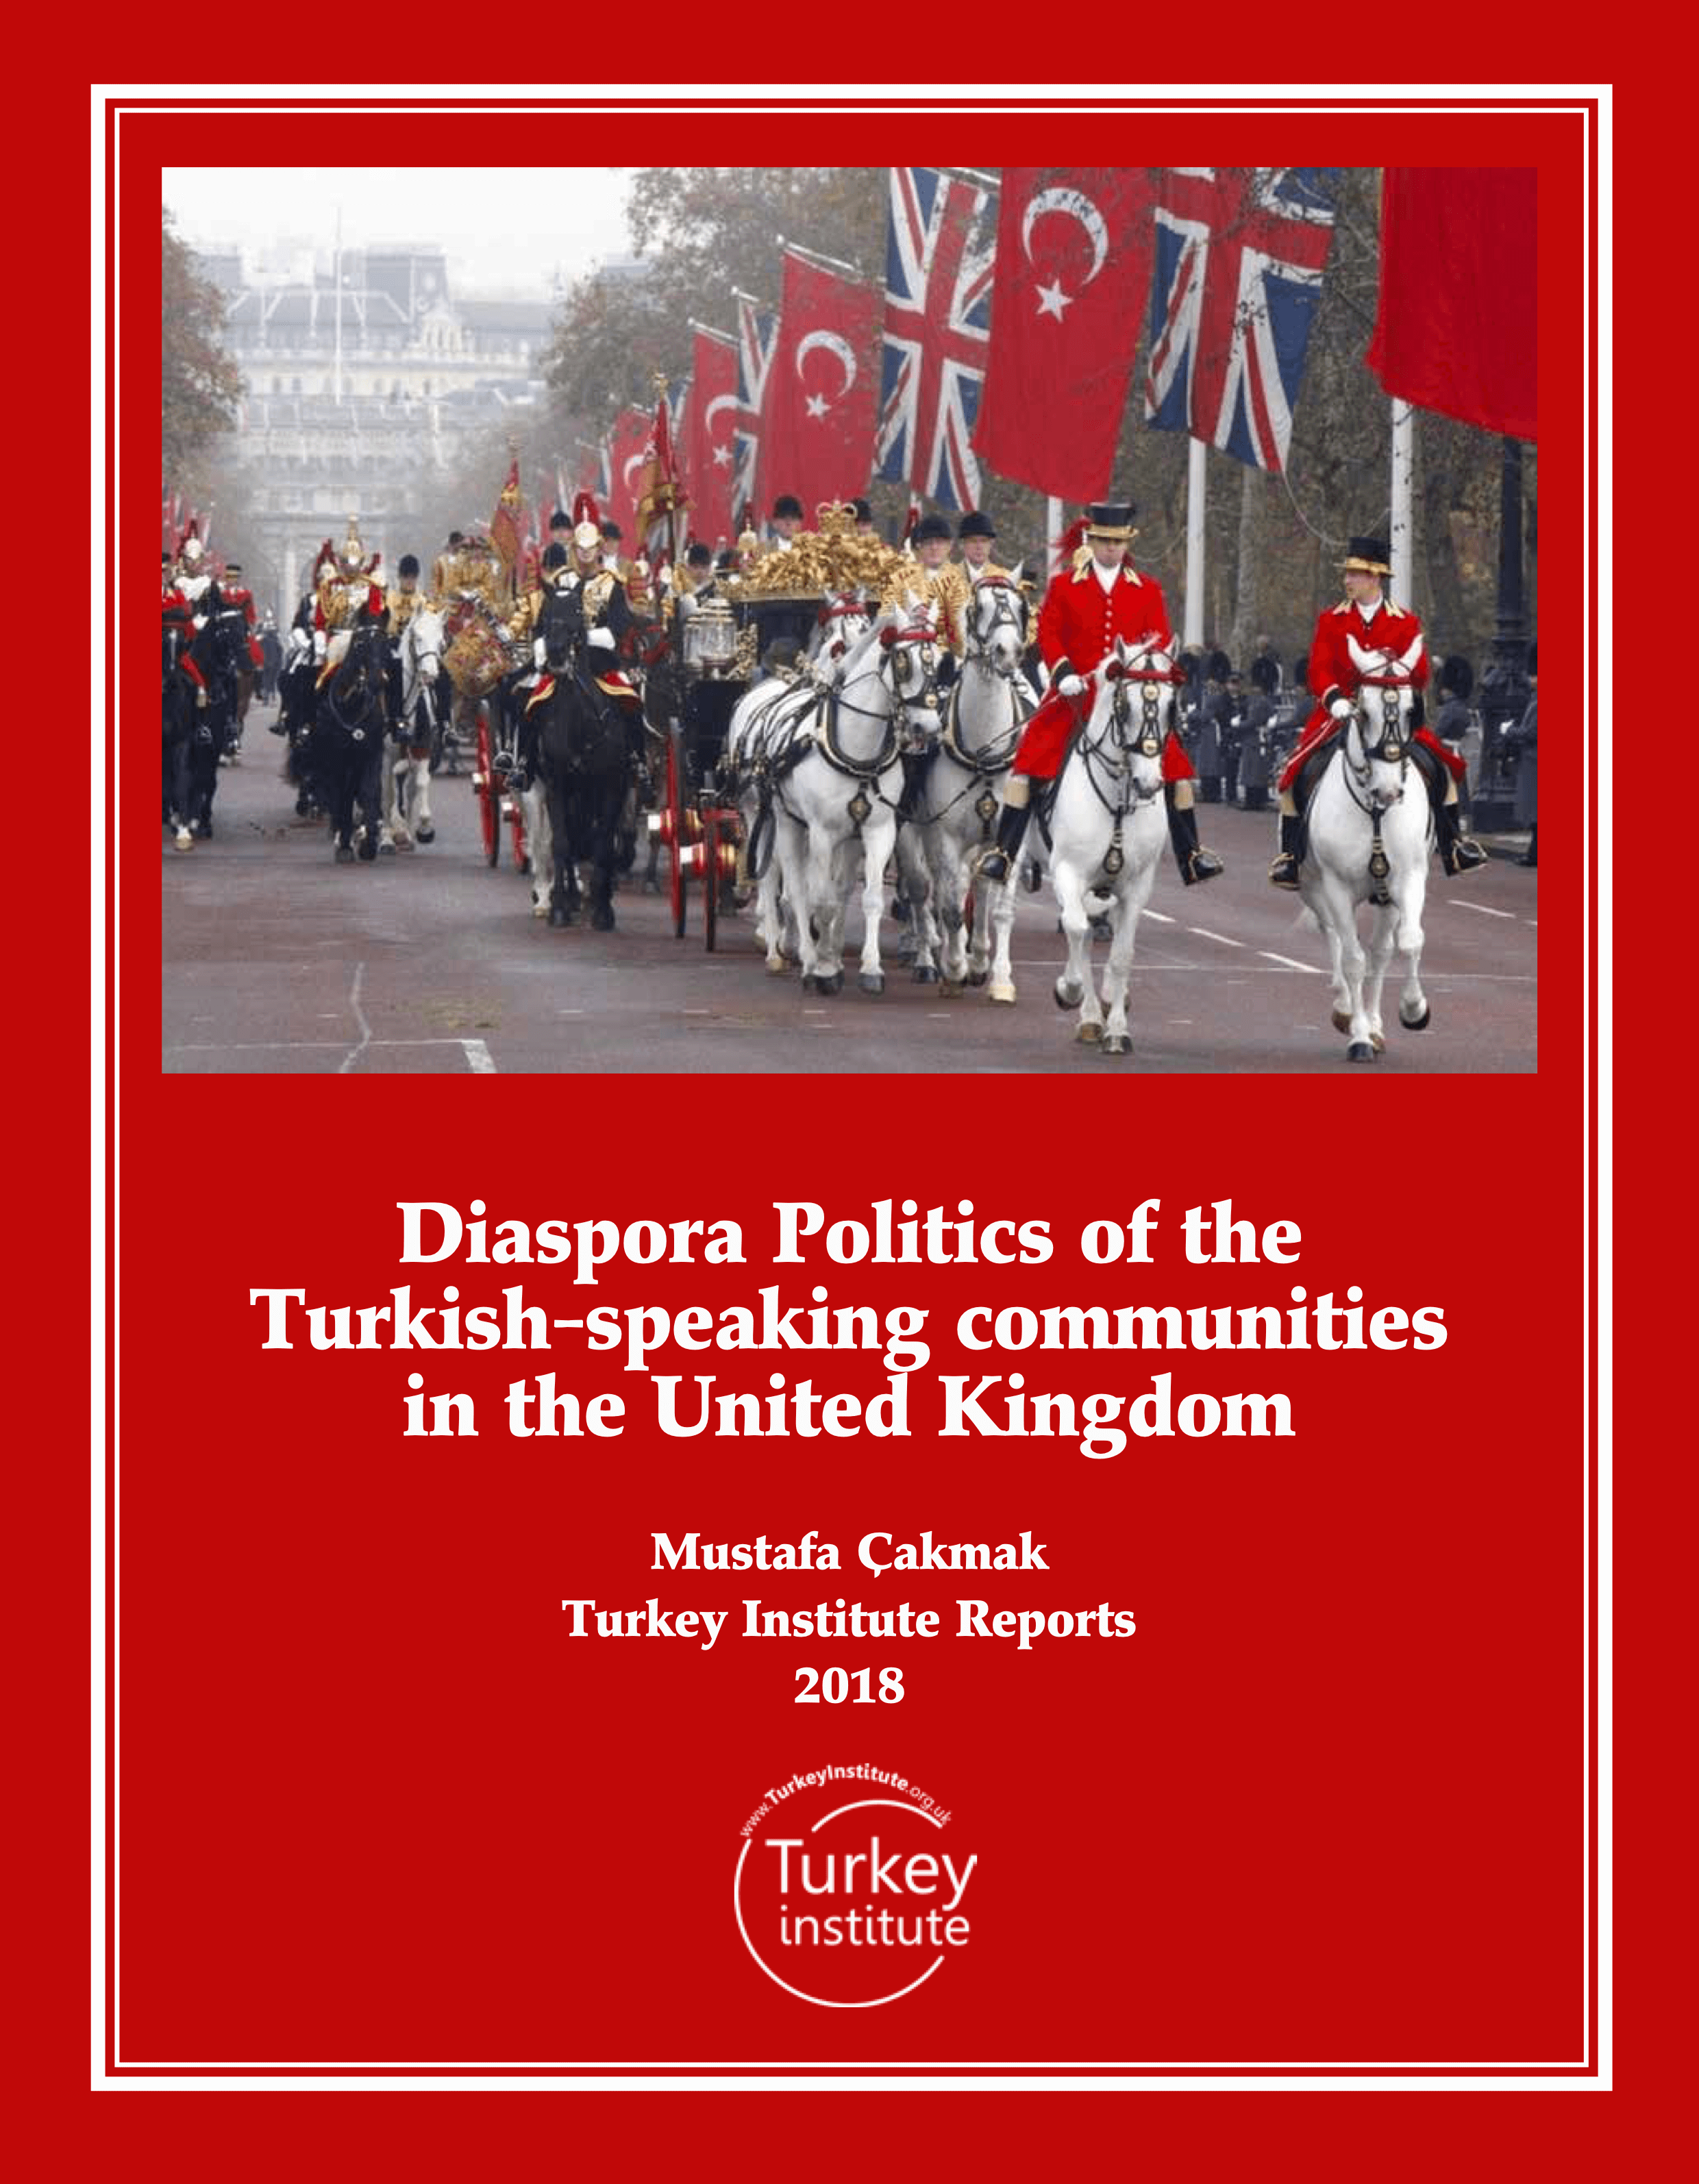 Diaspora Politics of the Turkish-speaking Community in the United Kingdom